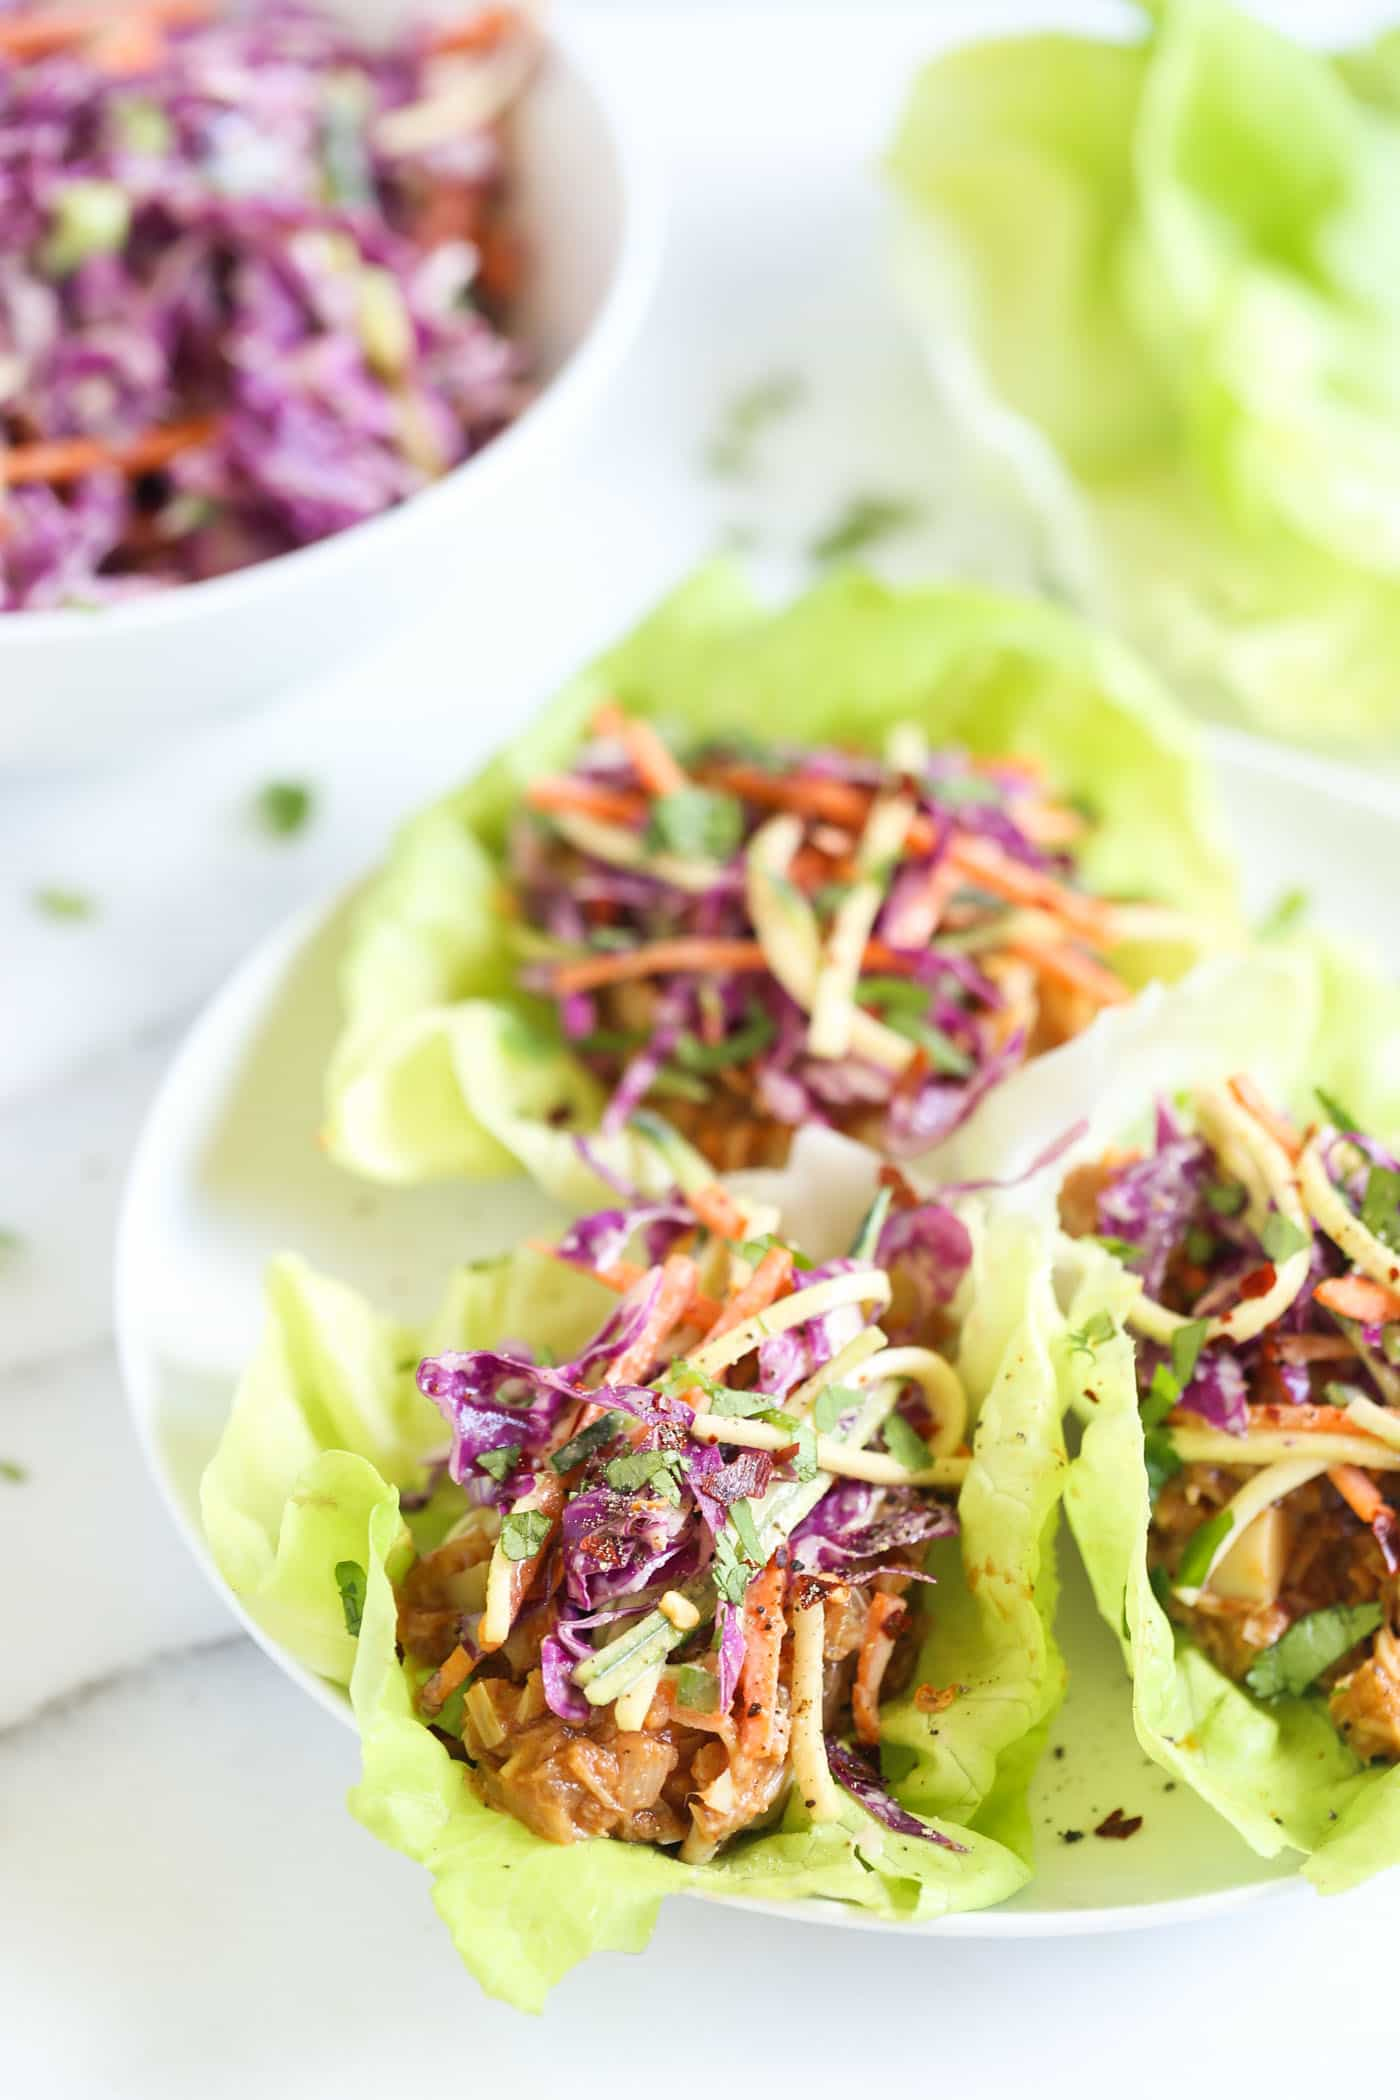 You'd never believe it, but these BBQ pulled pork lettuce wraps are actually VEGAN!